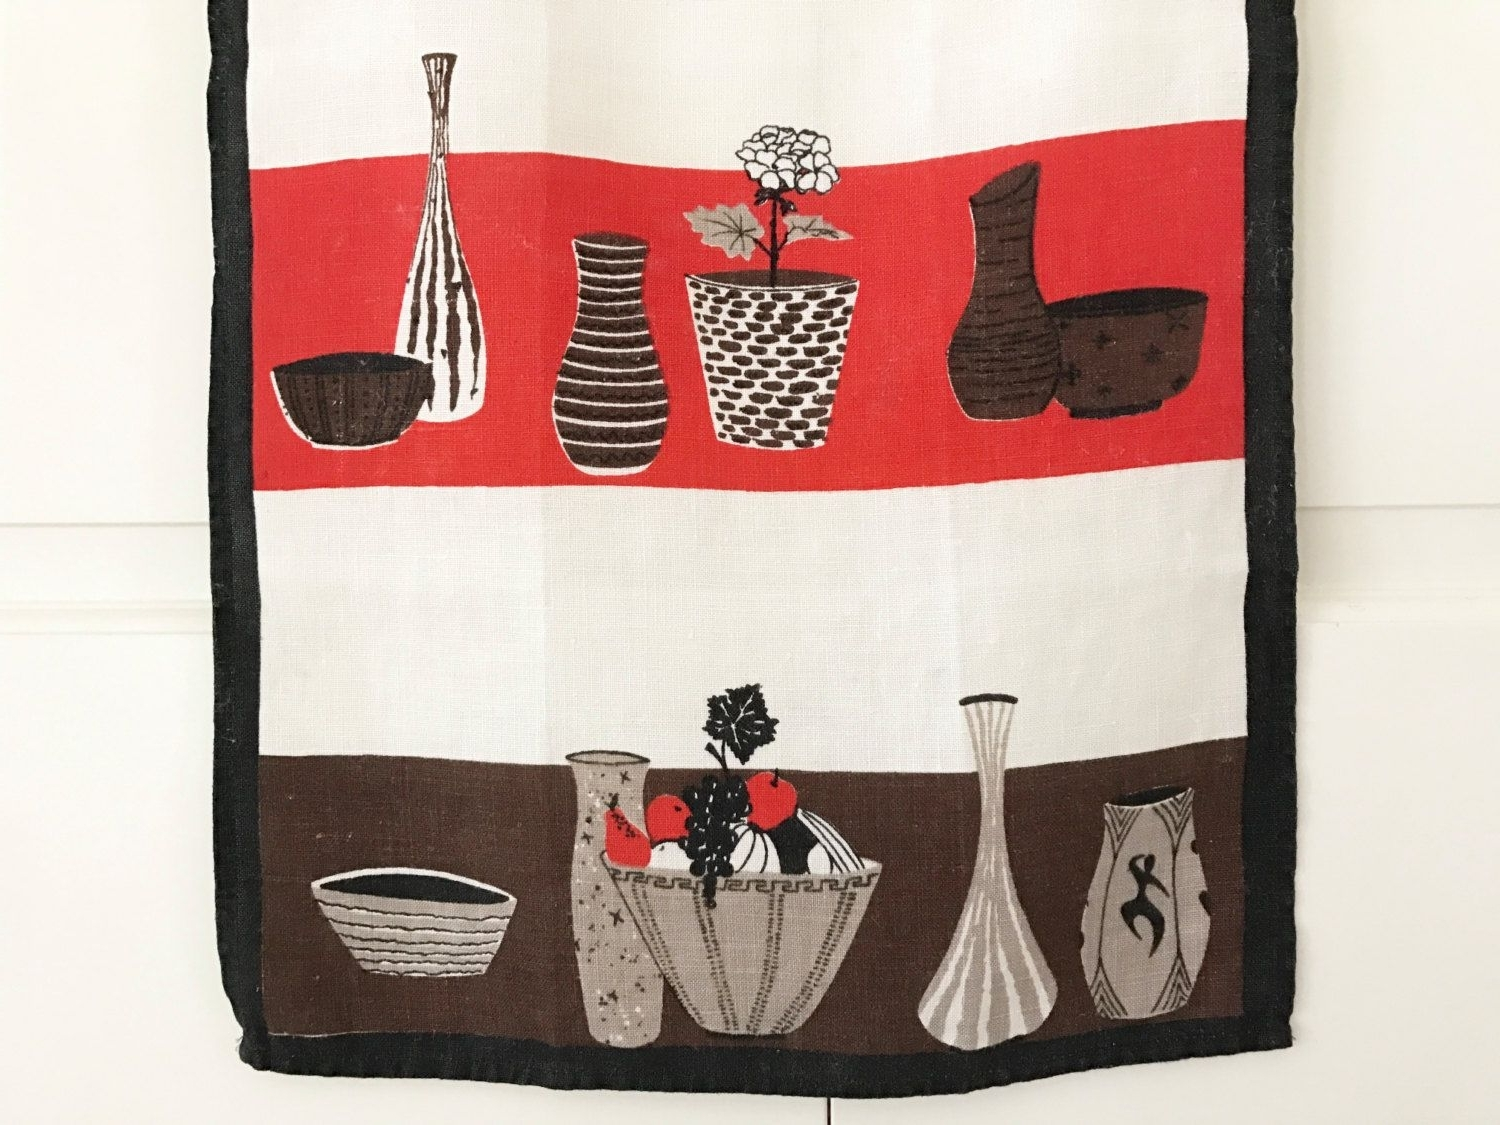 Mid Century Modern, Tea Towel, Cool Ceramic Vases, Bowls, Linen Within Widely Used Mid Century Textile Wall Art (View 3 of 15)